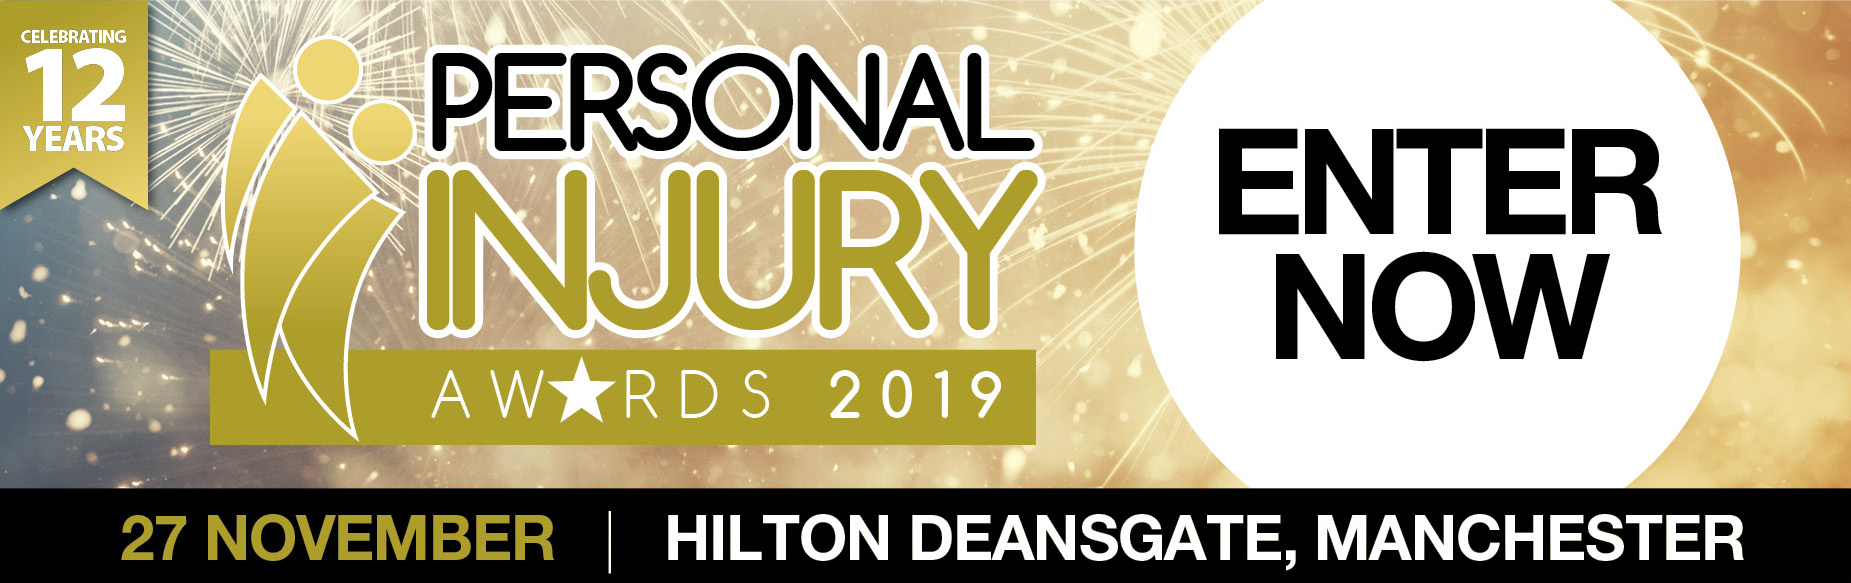 Personal Injury Awards 2019